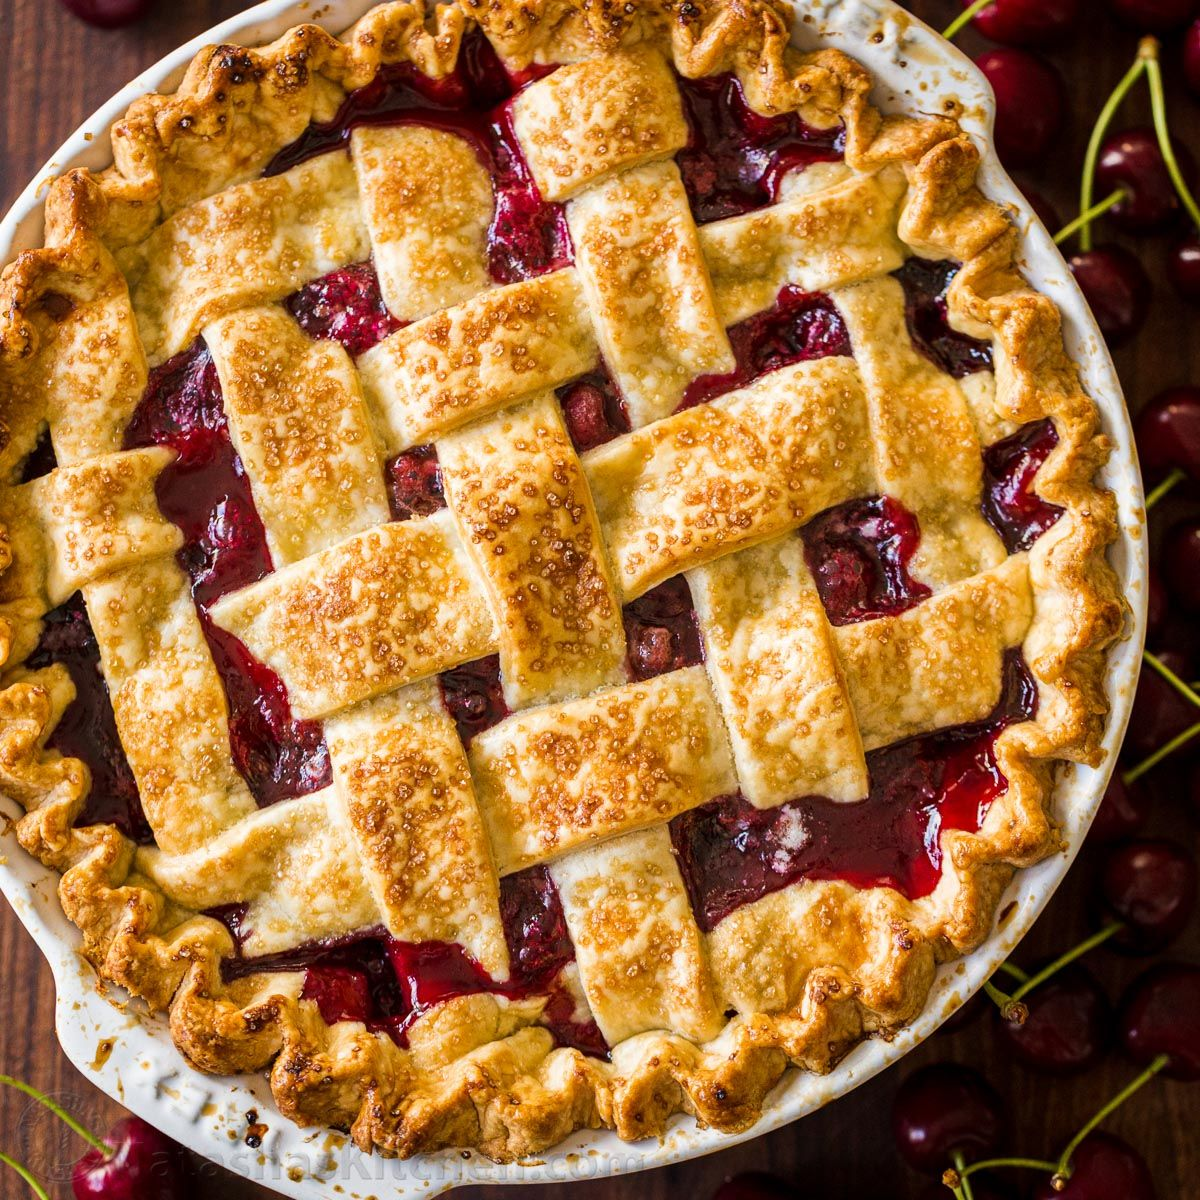 Classic Cherry Pie Recipe #sweetpie